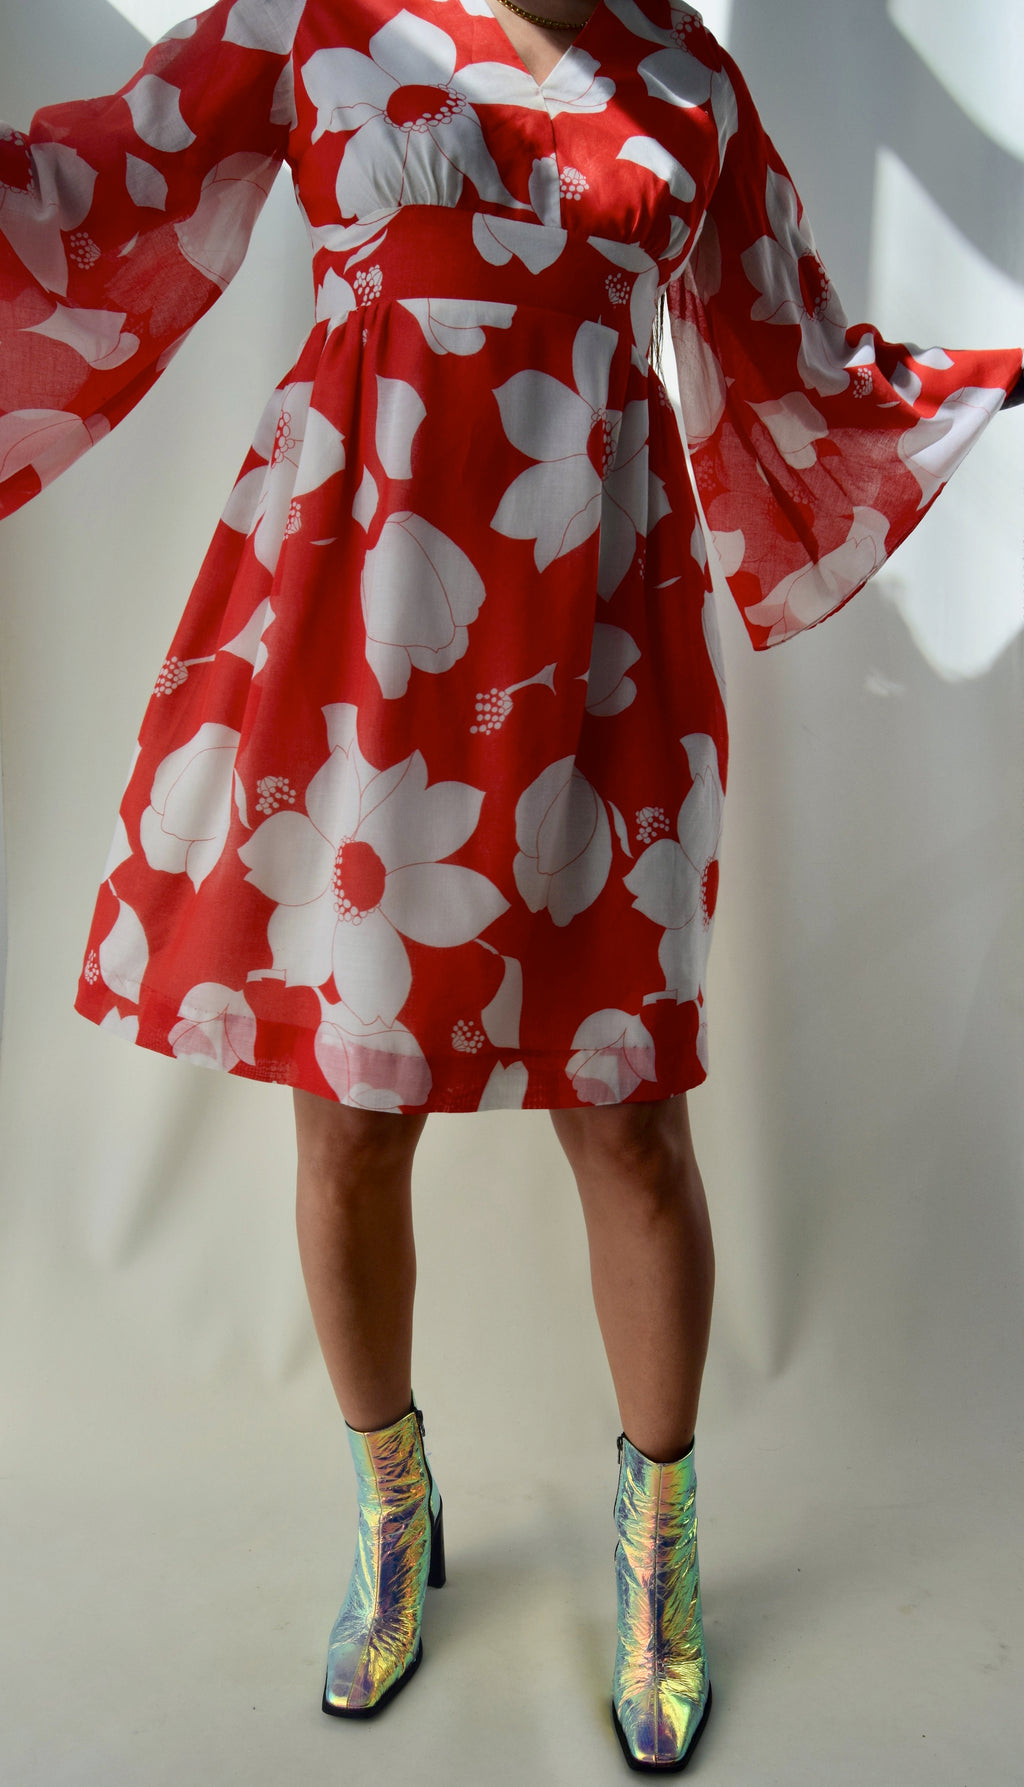 Vintage 1960's Candy Red Floral Dress FREE SHIPPING TO THE U.S.